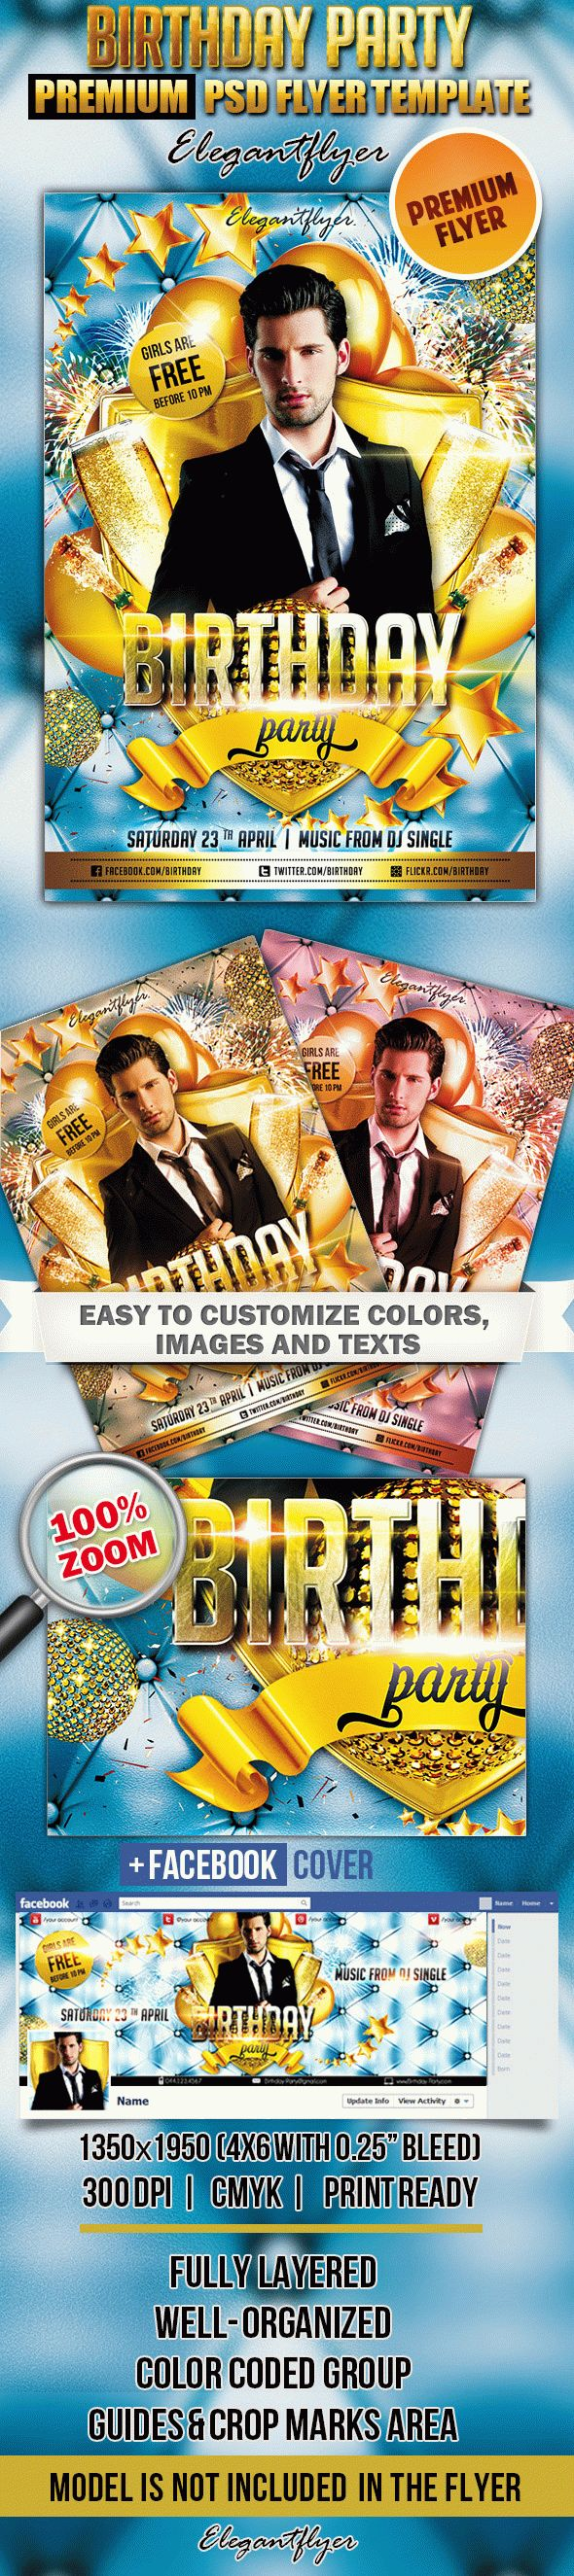 Birthday Party_4 – Flyer PSD Template + Facebook Cover